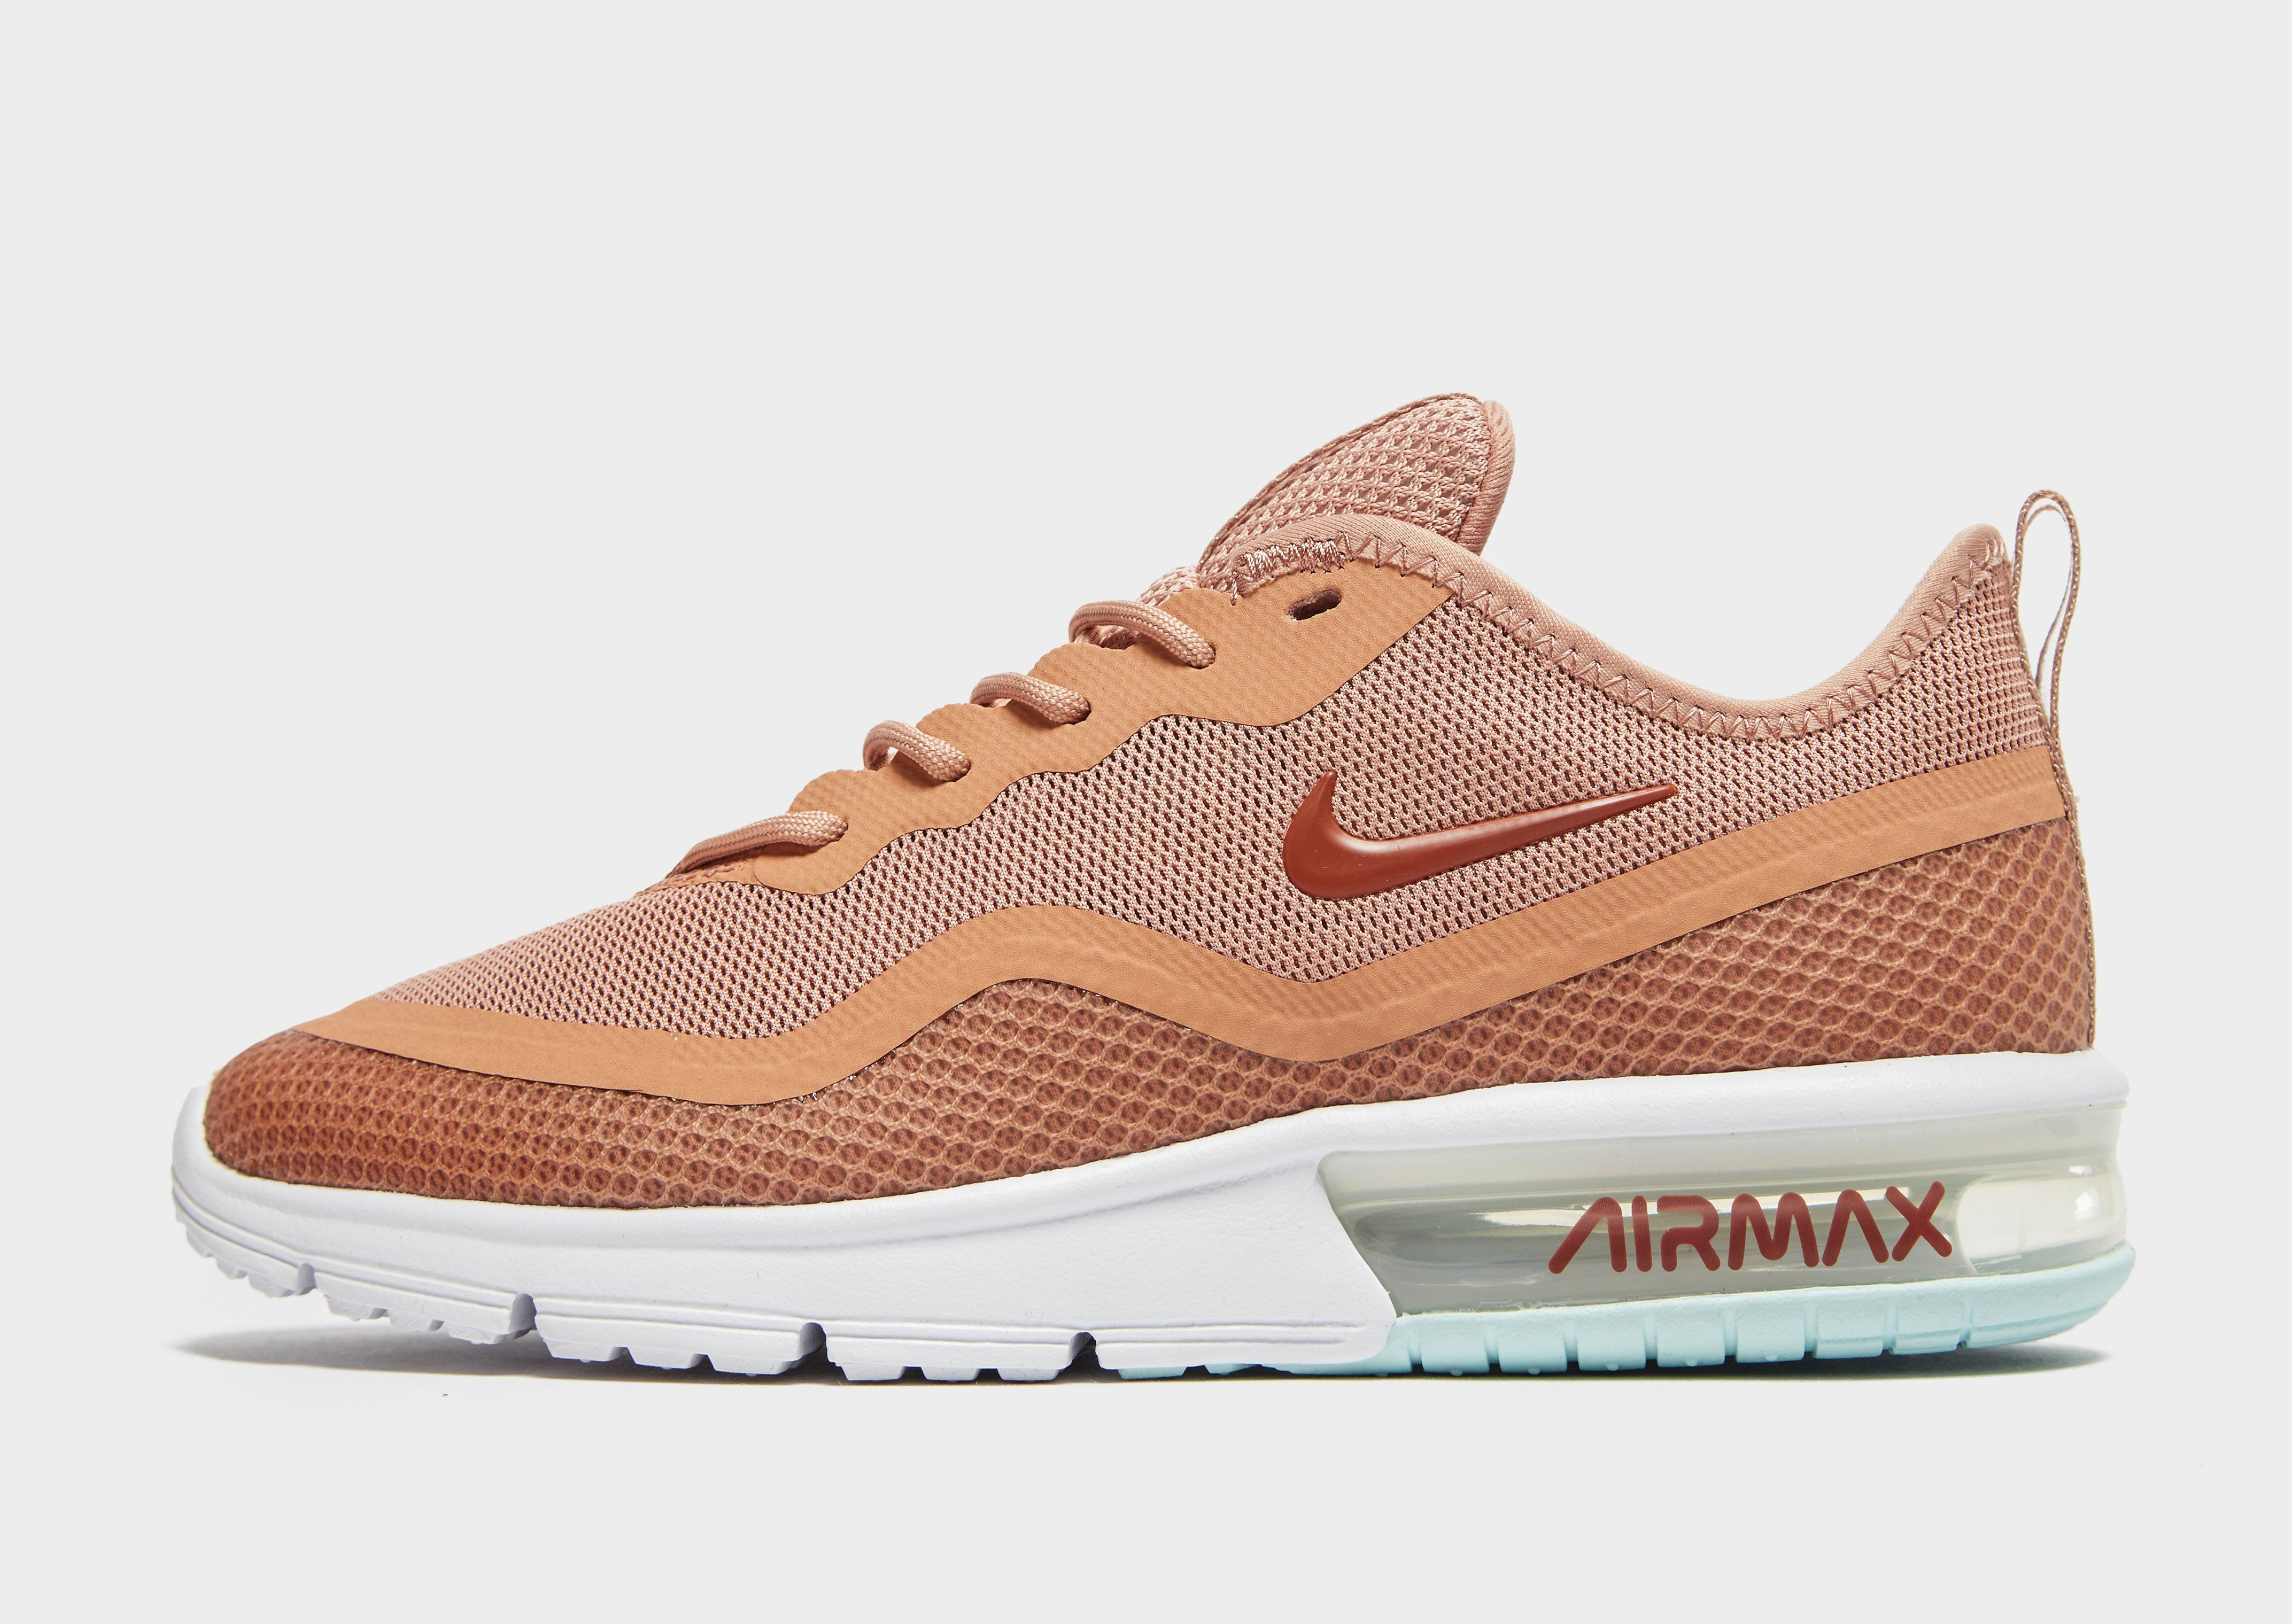 new arrival 63144 3e4d3 Nike Air Max Sequent 4.5 Women's | JD Sports